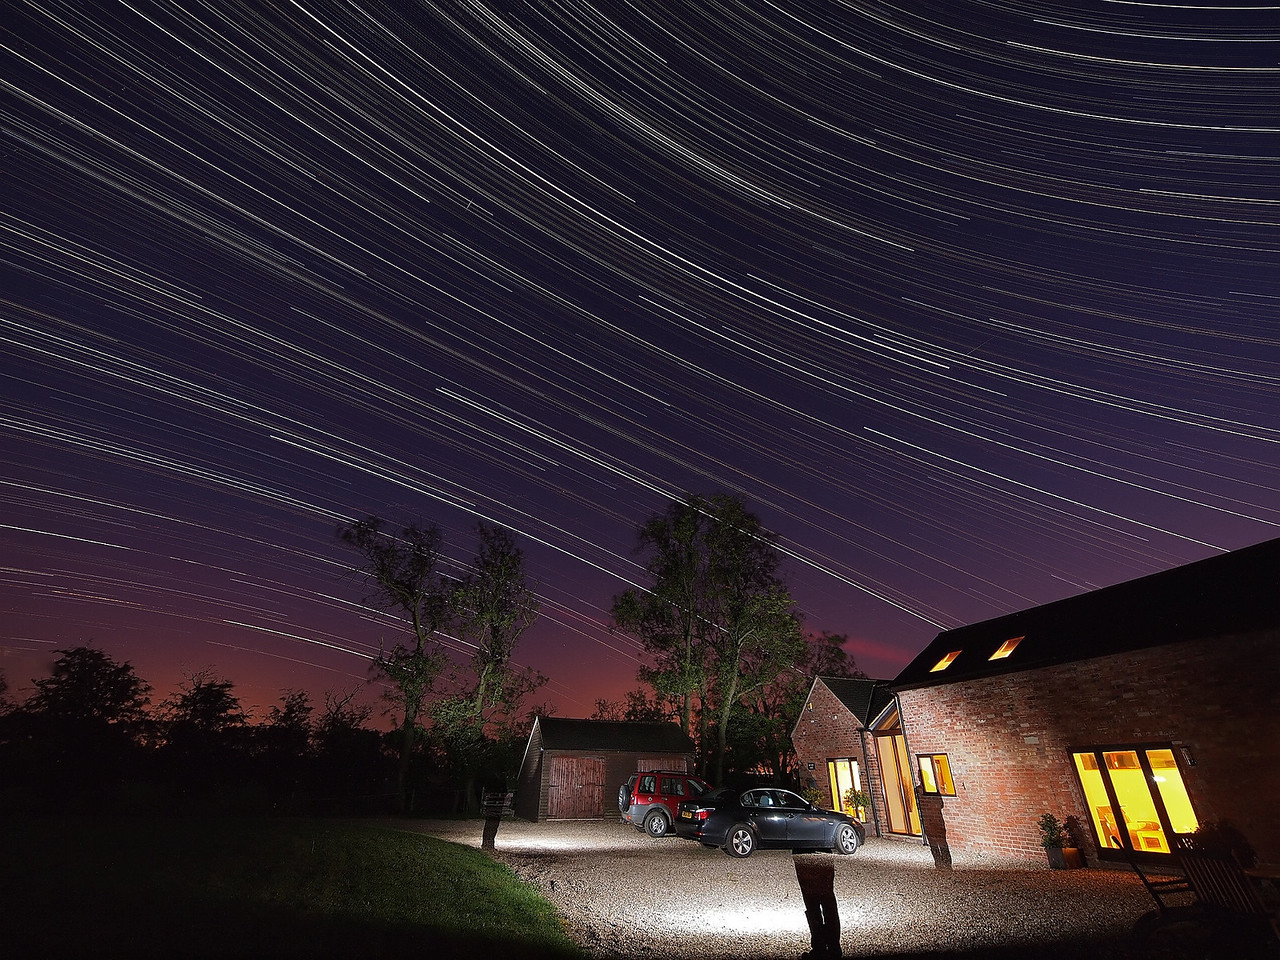 April 23_24 2011. 1000 images to produce this great star trail. Composition worked really well & I used the flash gun to paint a bit of foreground. Nicely captured the opposing curvature either side of the celestial equator. Oly E5, 7-14mm. 15s exposures @ F4 ISO 500 shot continuous through night. The Icelandic volcanic ash is slowly making its way ;-)